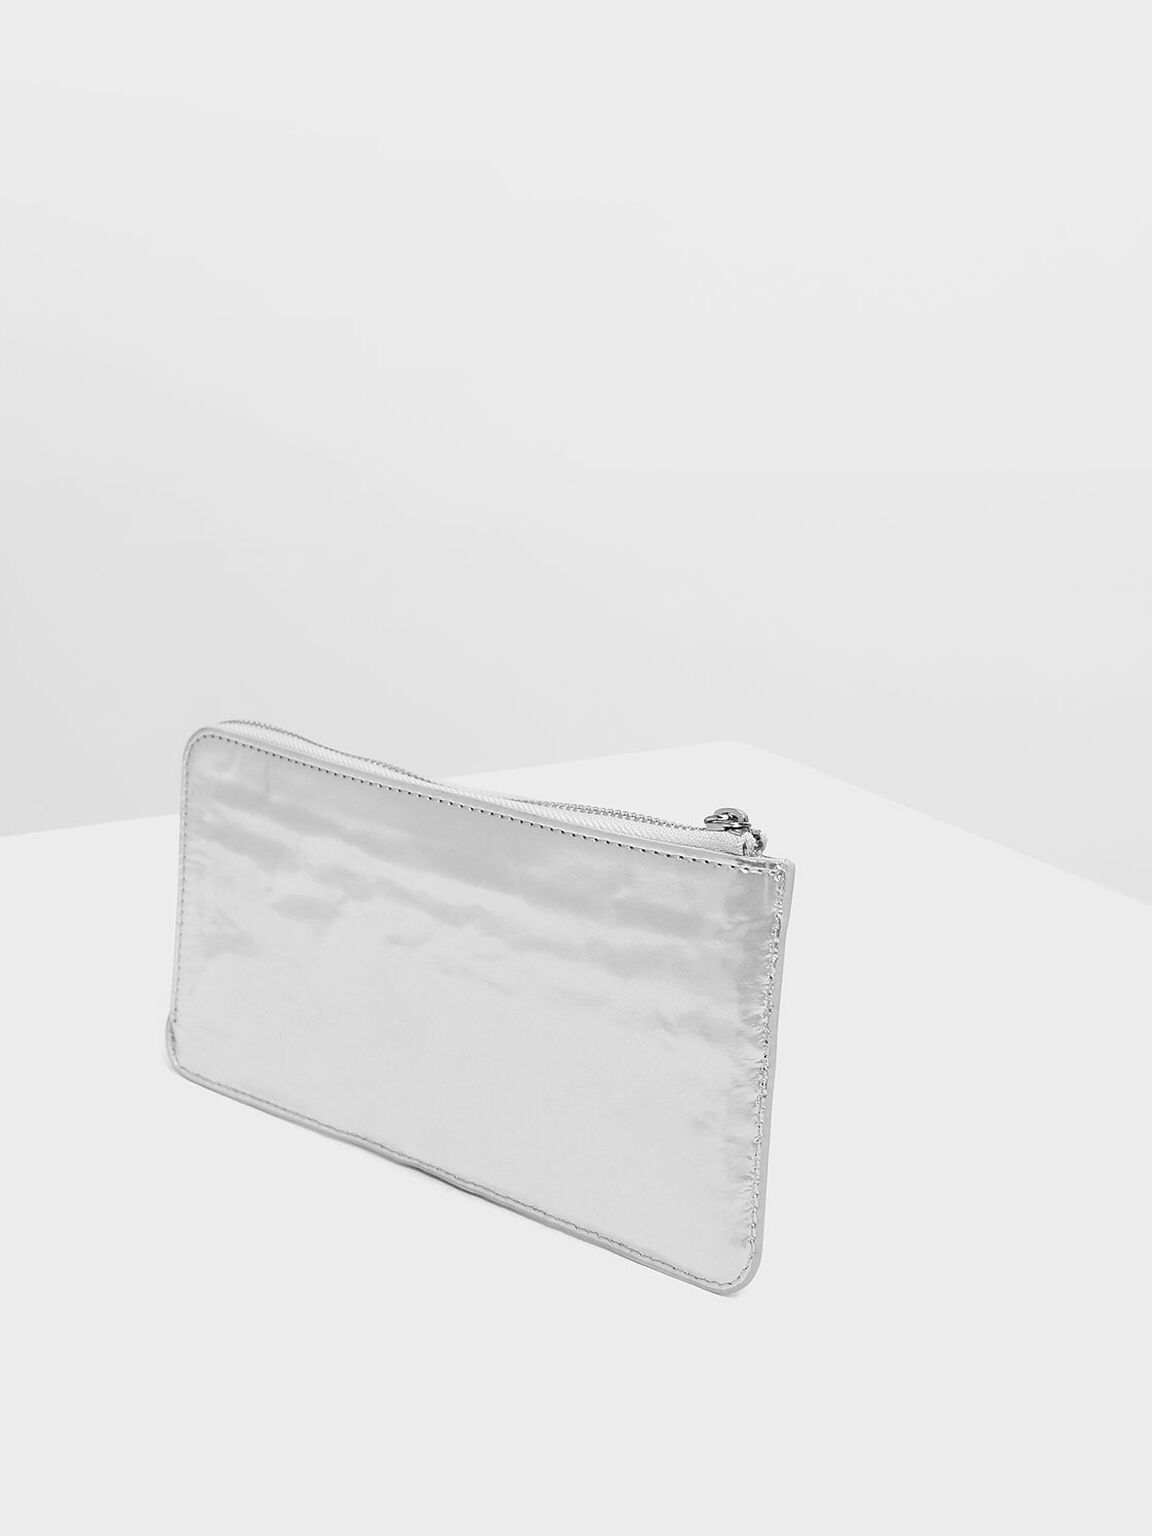 L-Zip Wallet, Silver, hi-res